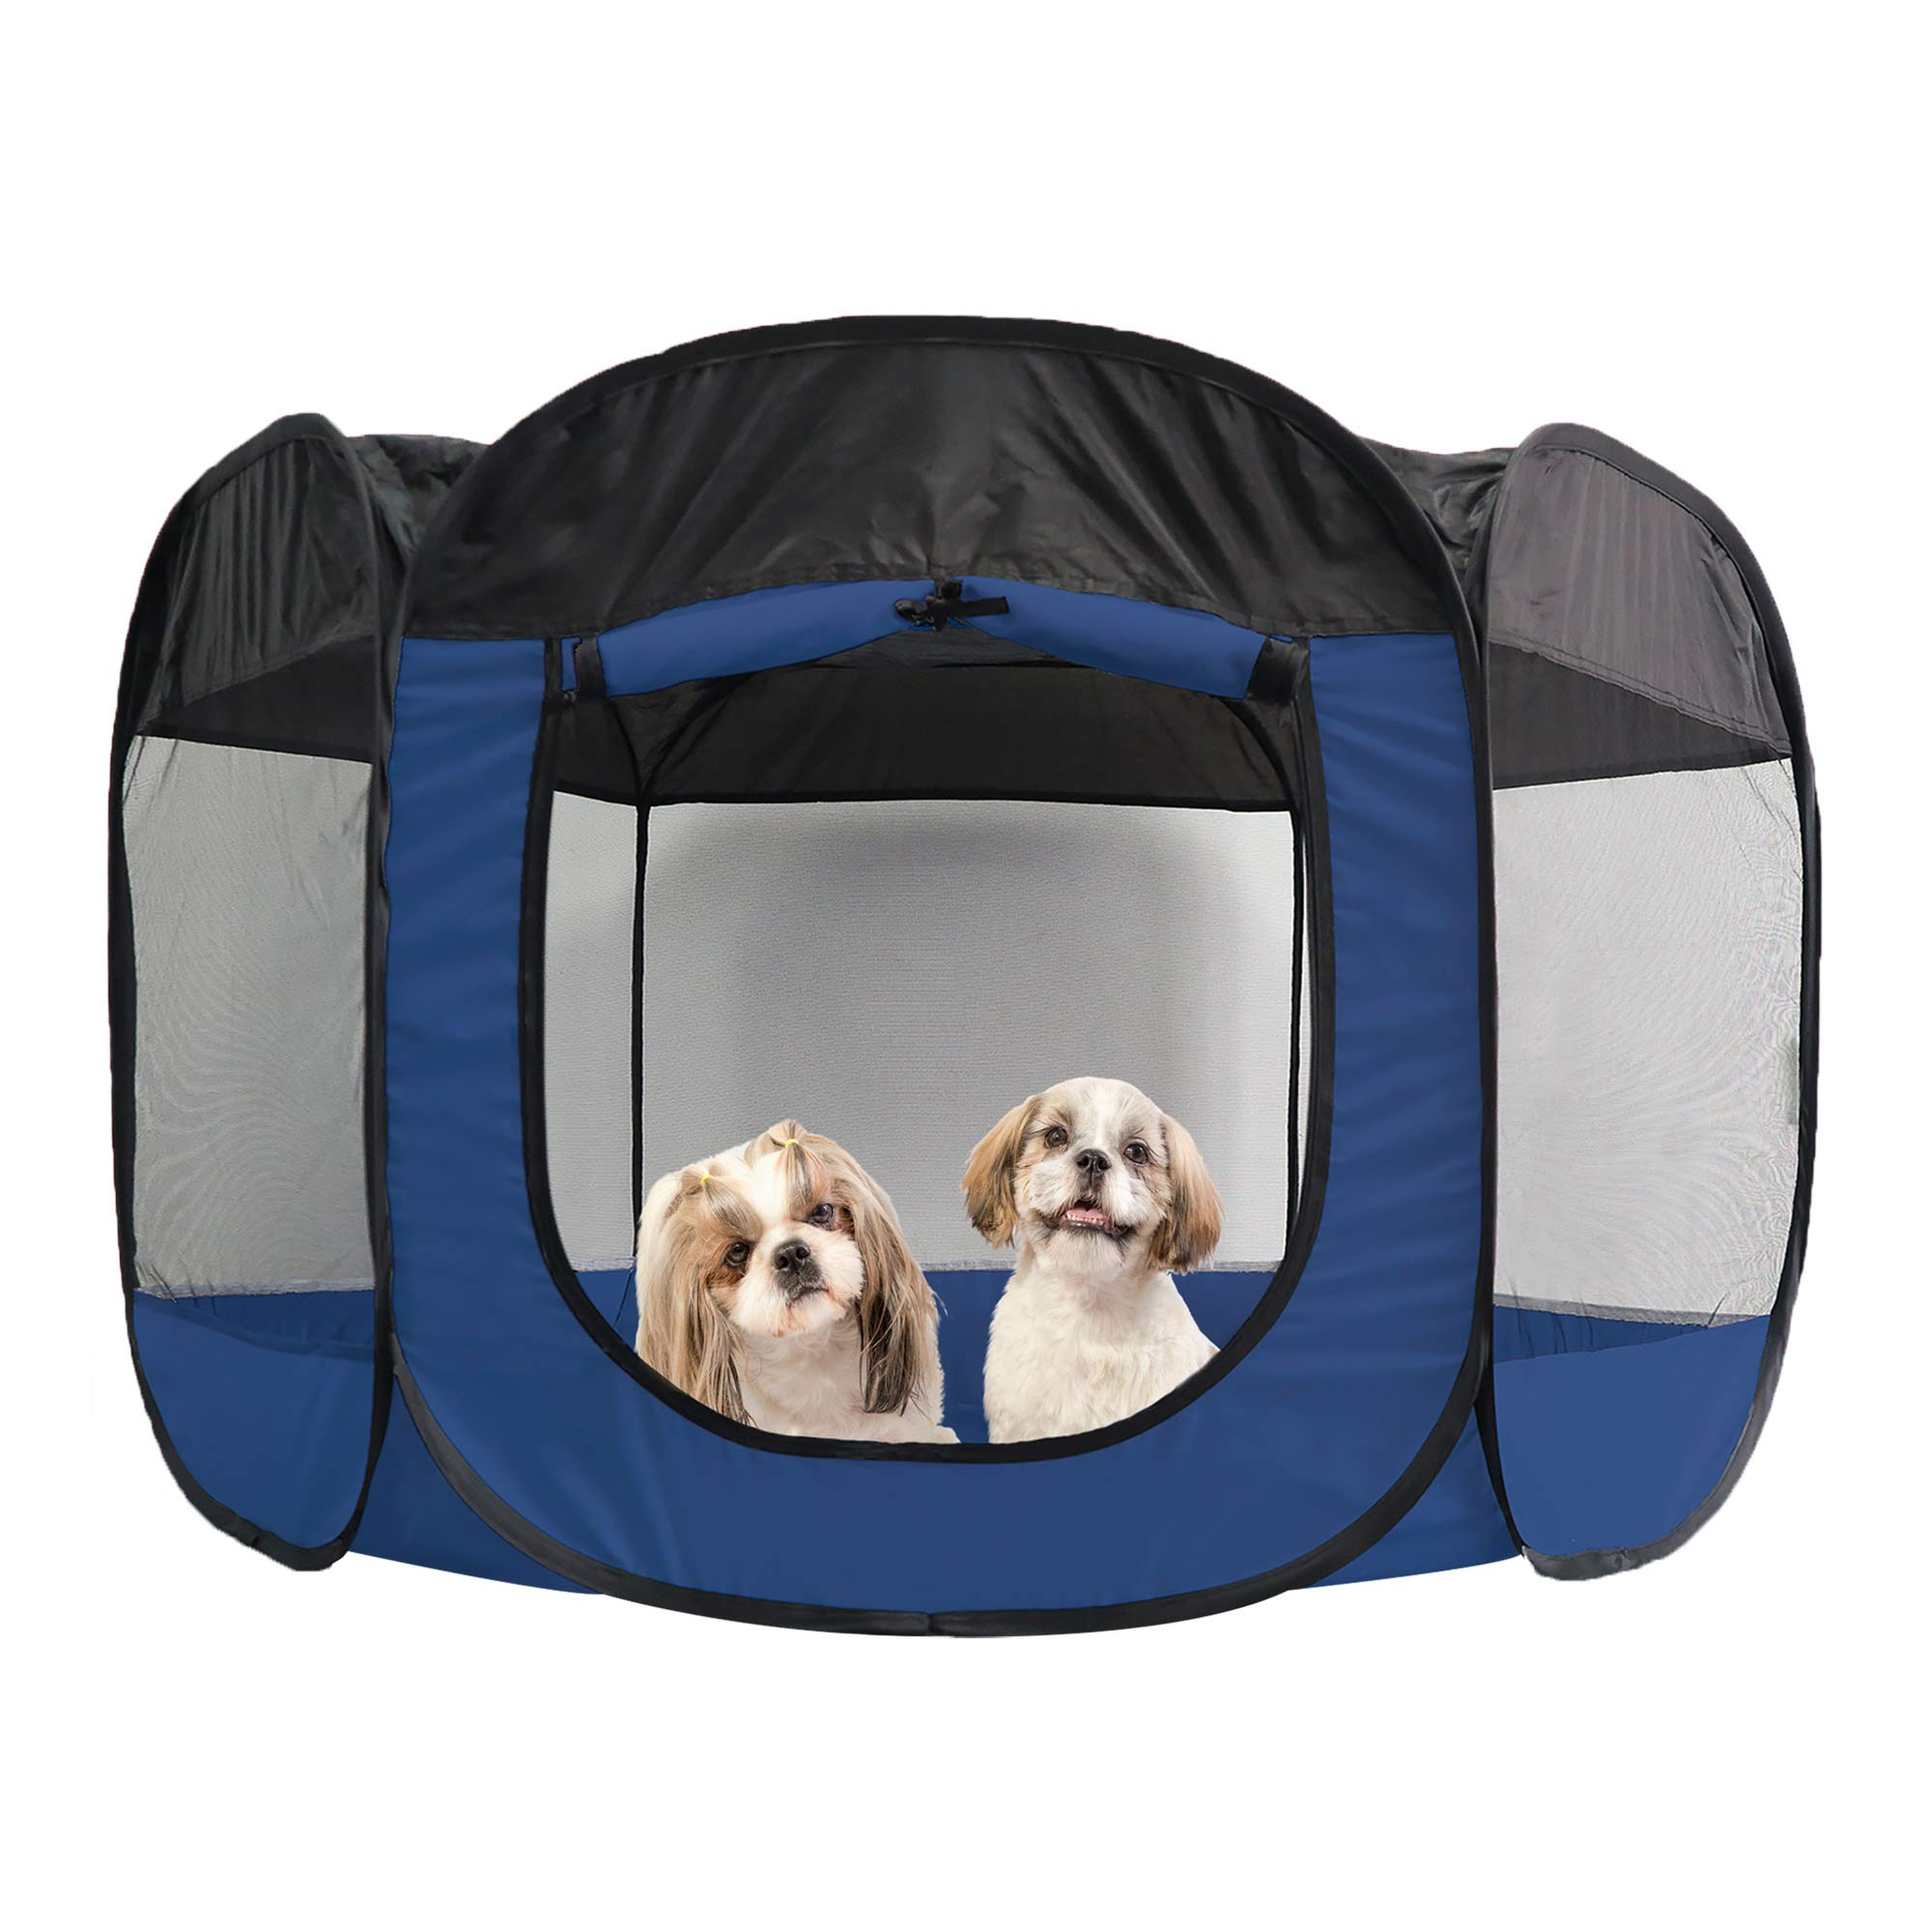 Furhaven Pet Playpen | Indoor/Outdoor Mesh Open-Air Playpen & Exercise Pen Tent House Playground for Dogs & Cats, Sailor Blue, Extra Large